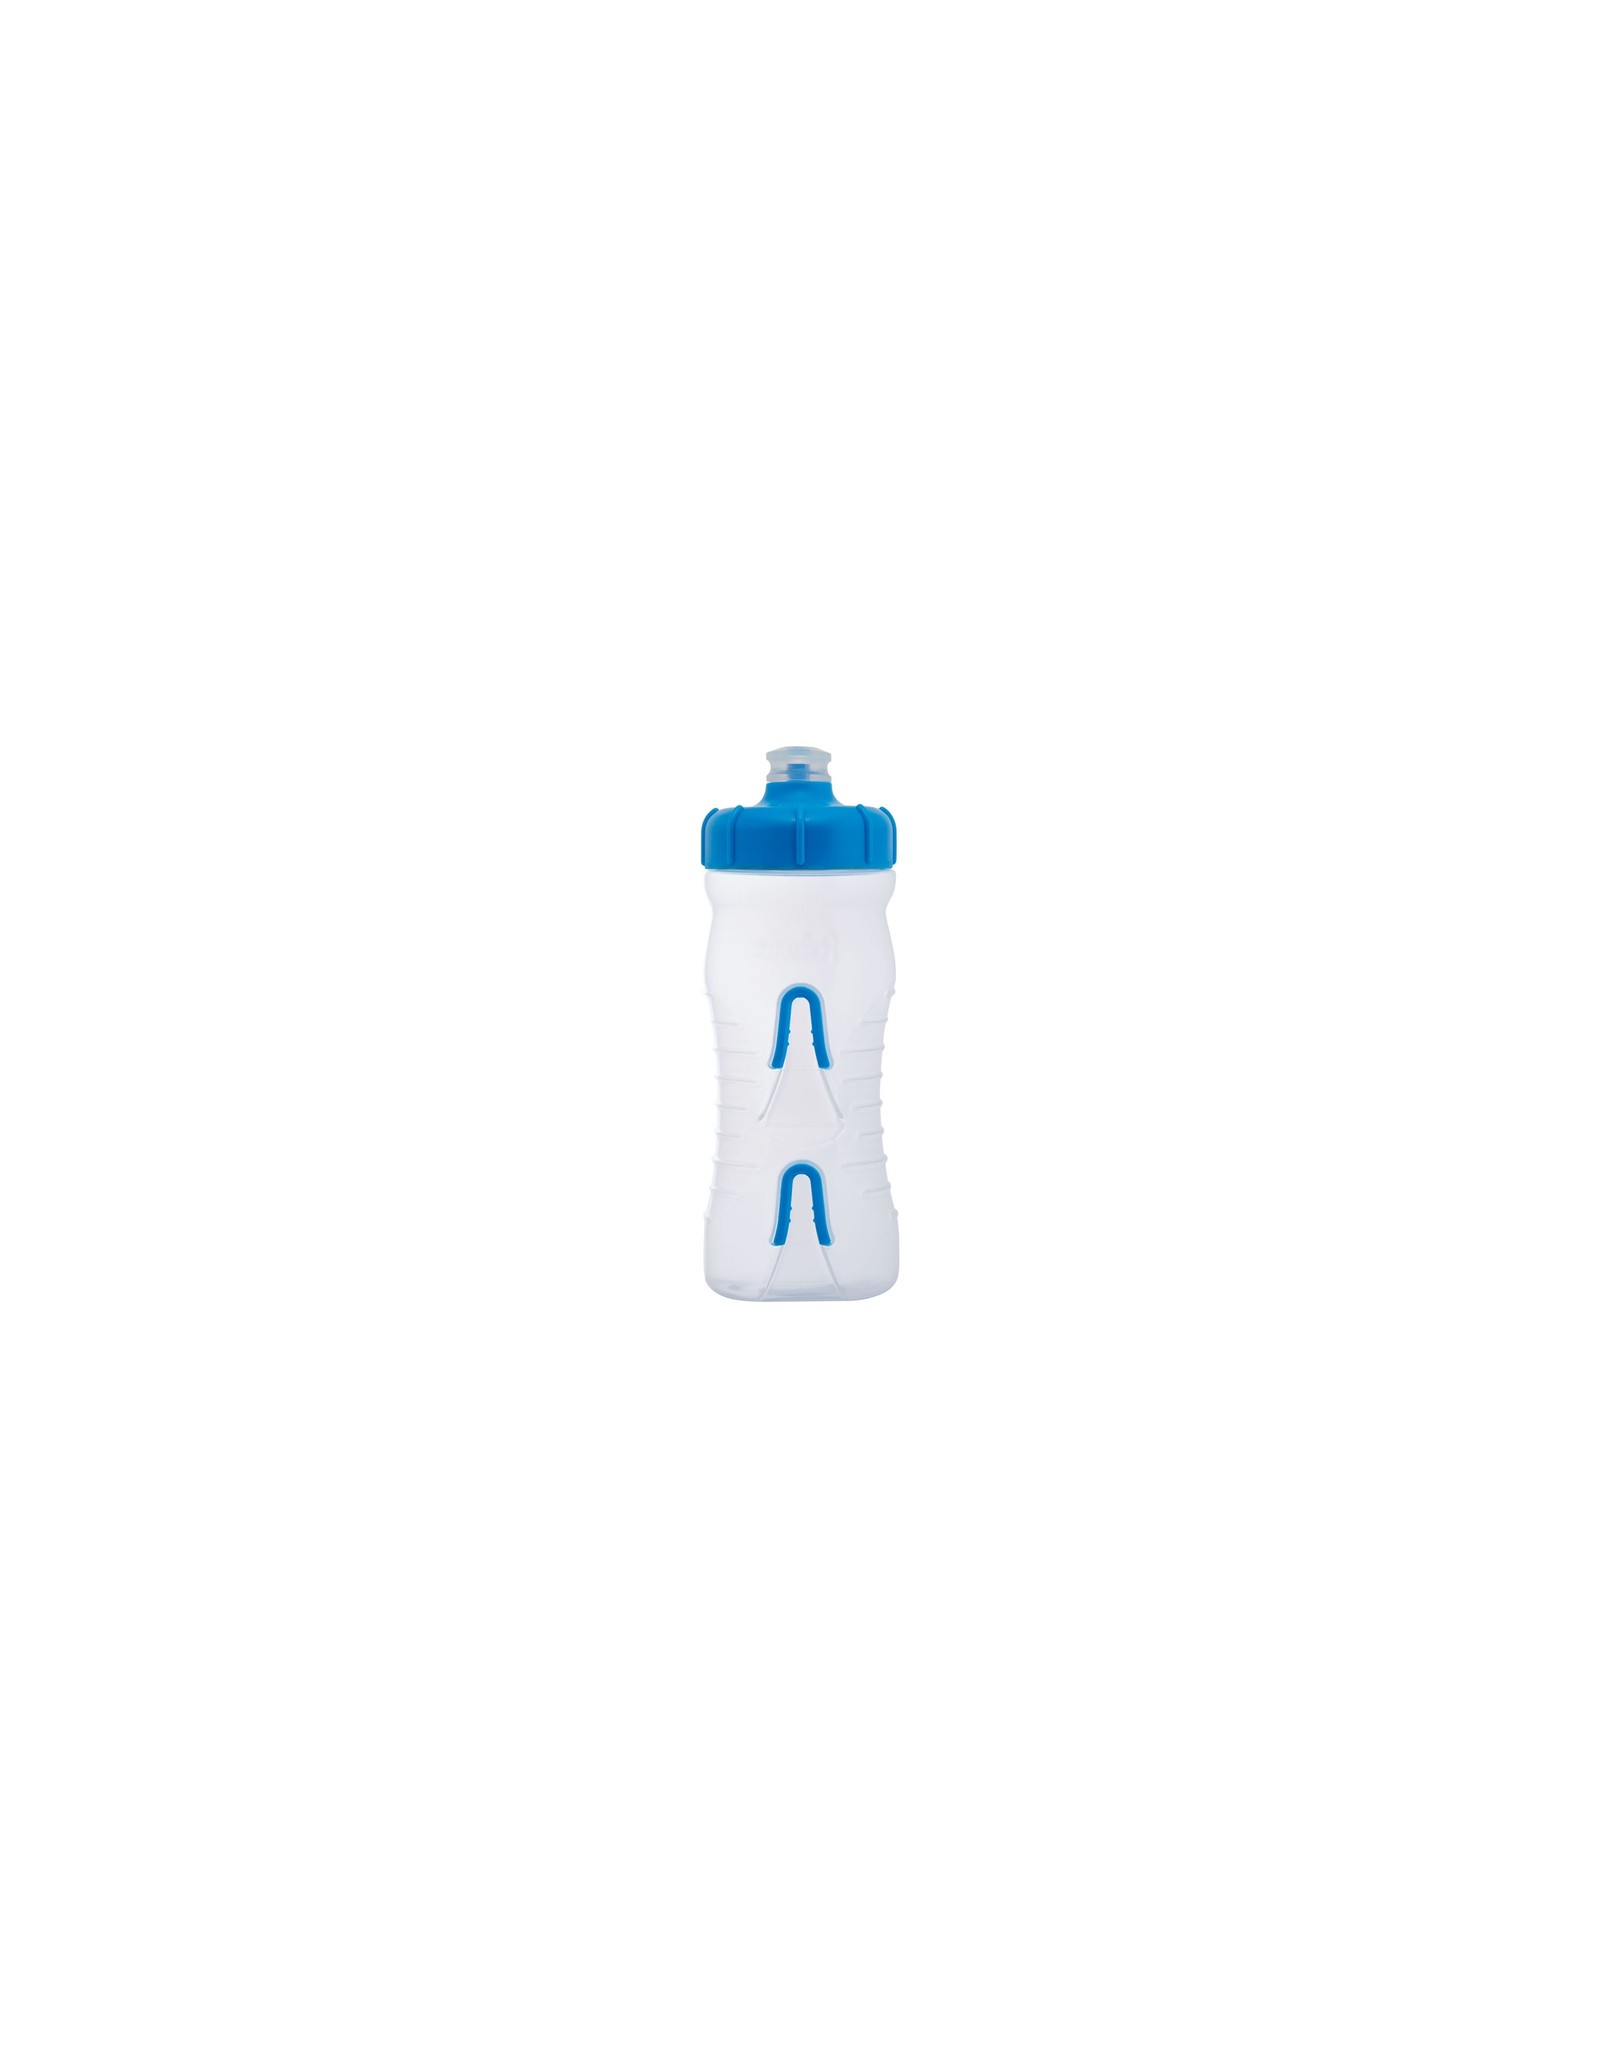 Fabric Cageless Bottle CLL 600ml Clear w Blue